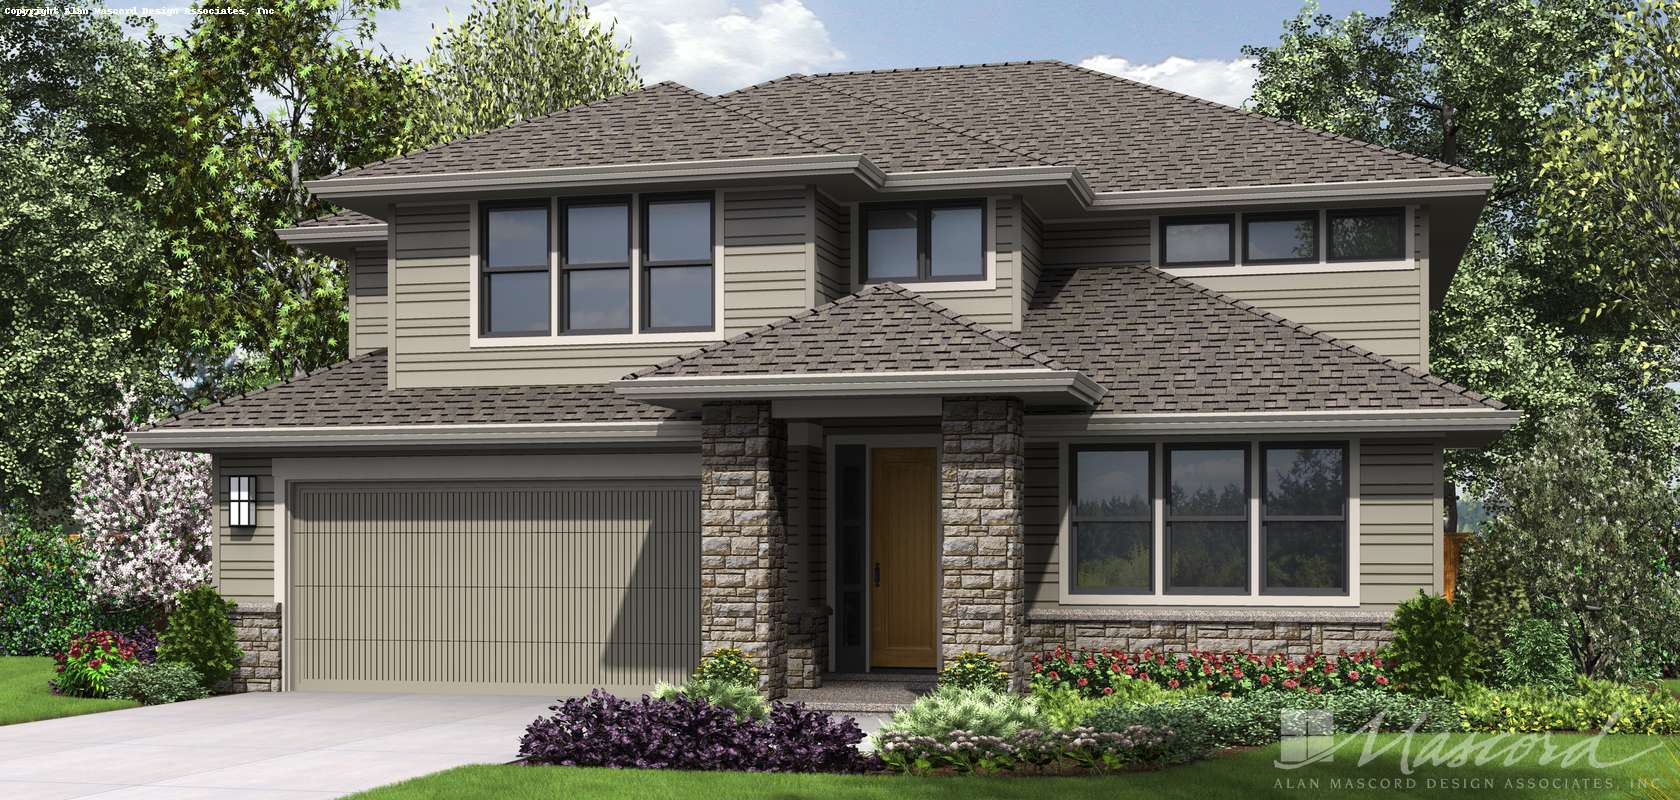 Mascord House Plan 2230CG: The Gardena